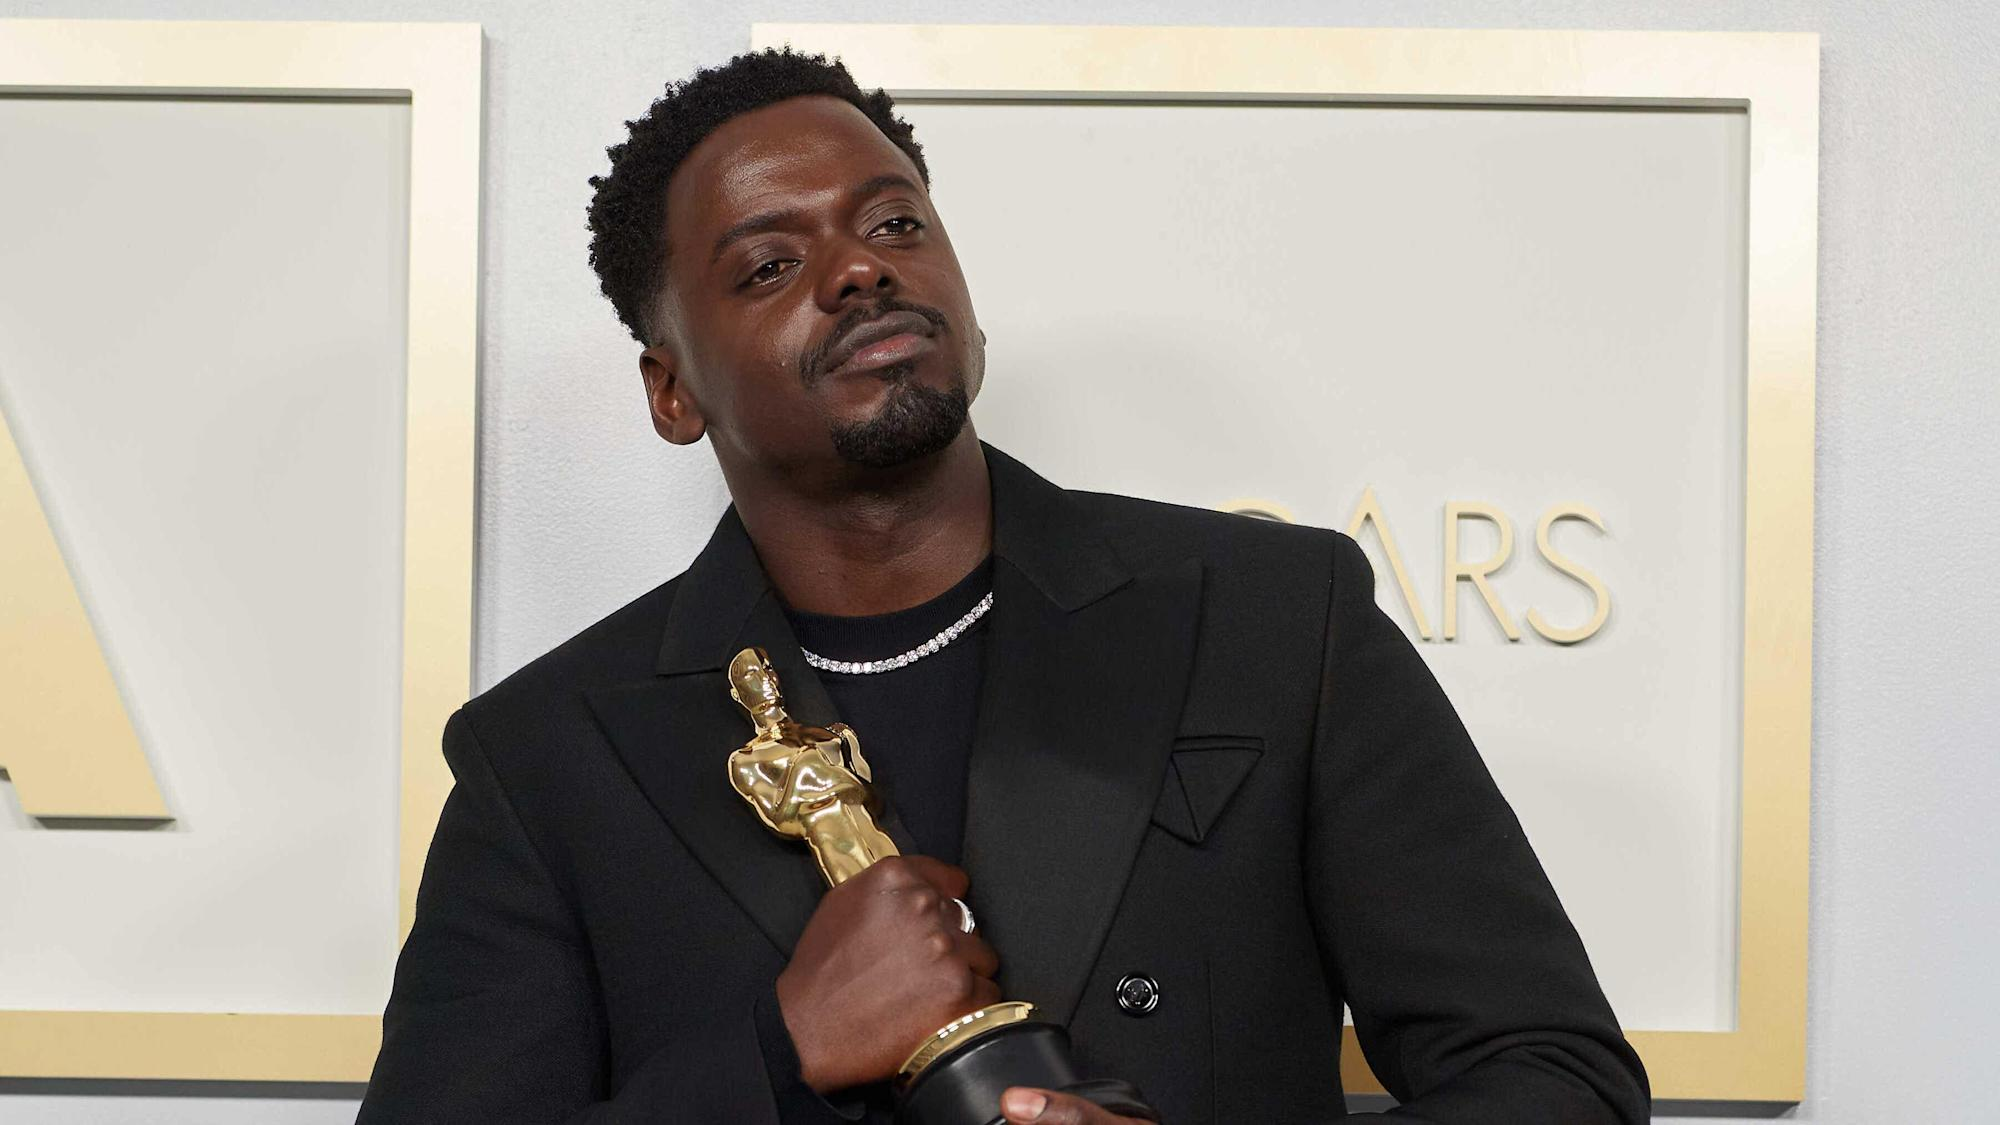 John Boyega hails 'King Kaluuya' after fellow Briton's historic Oscars win